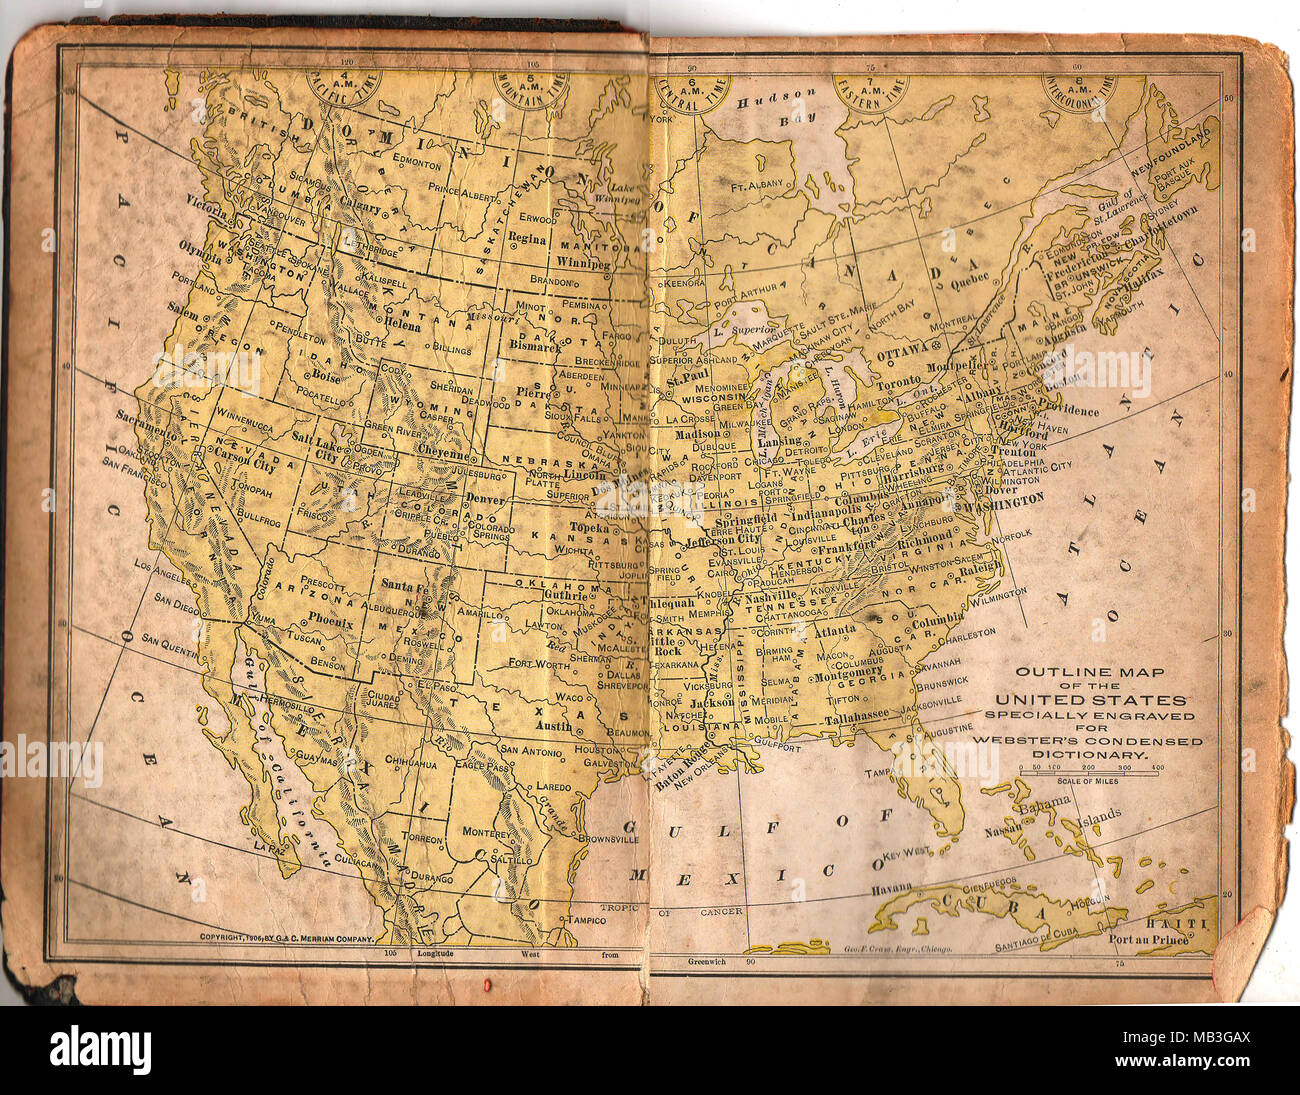 Real Map Of The United States.Map Of The United States Stock Photos Map Of The United States